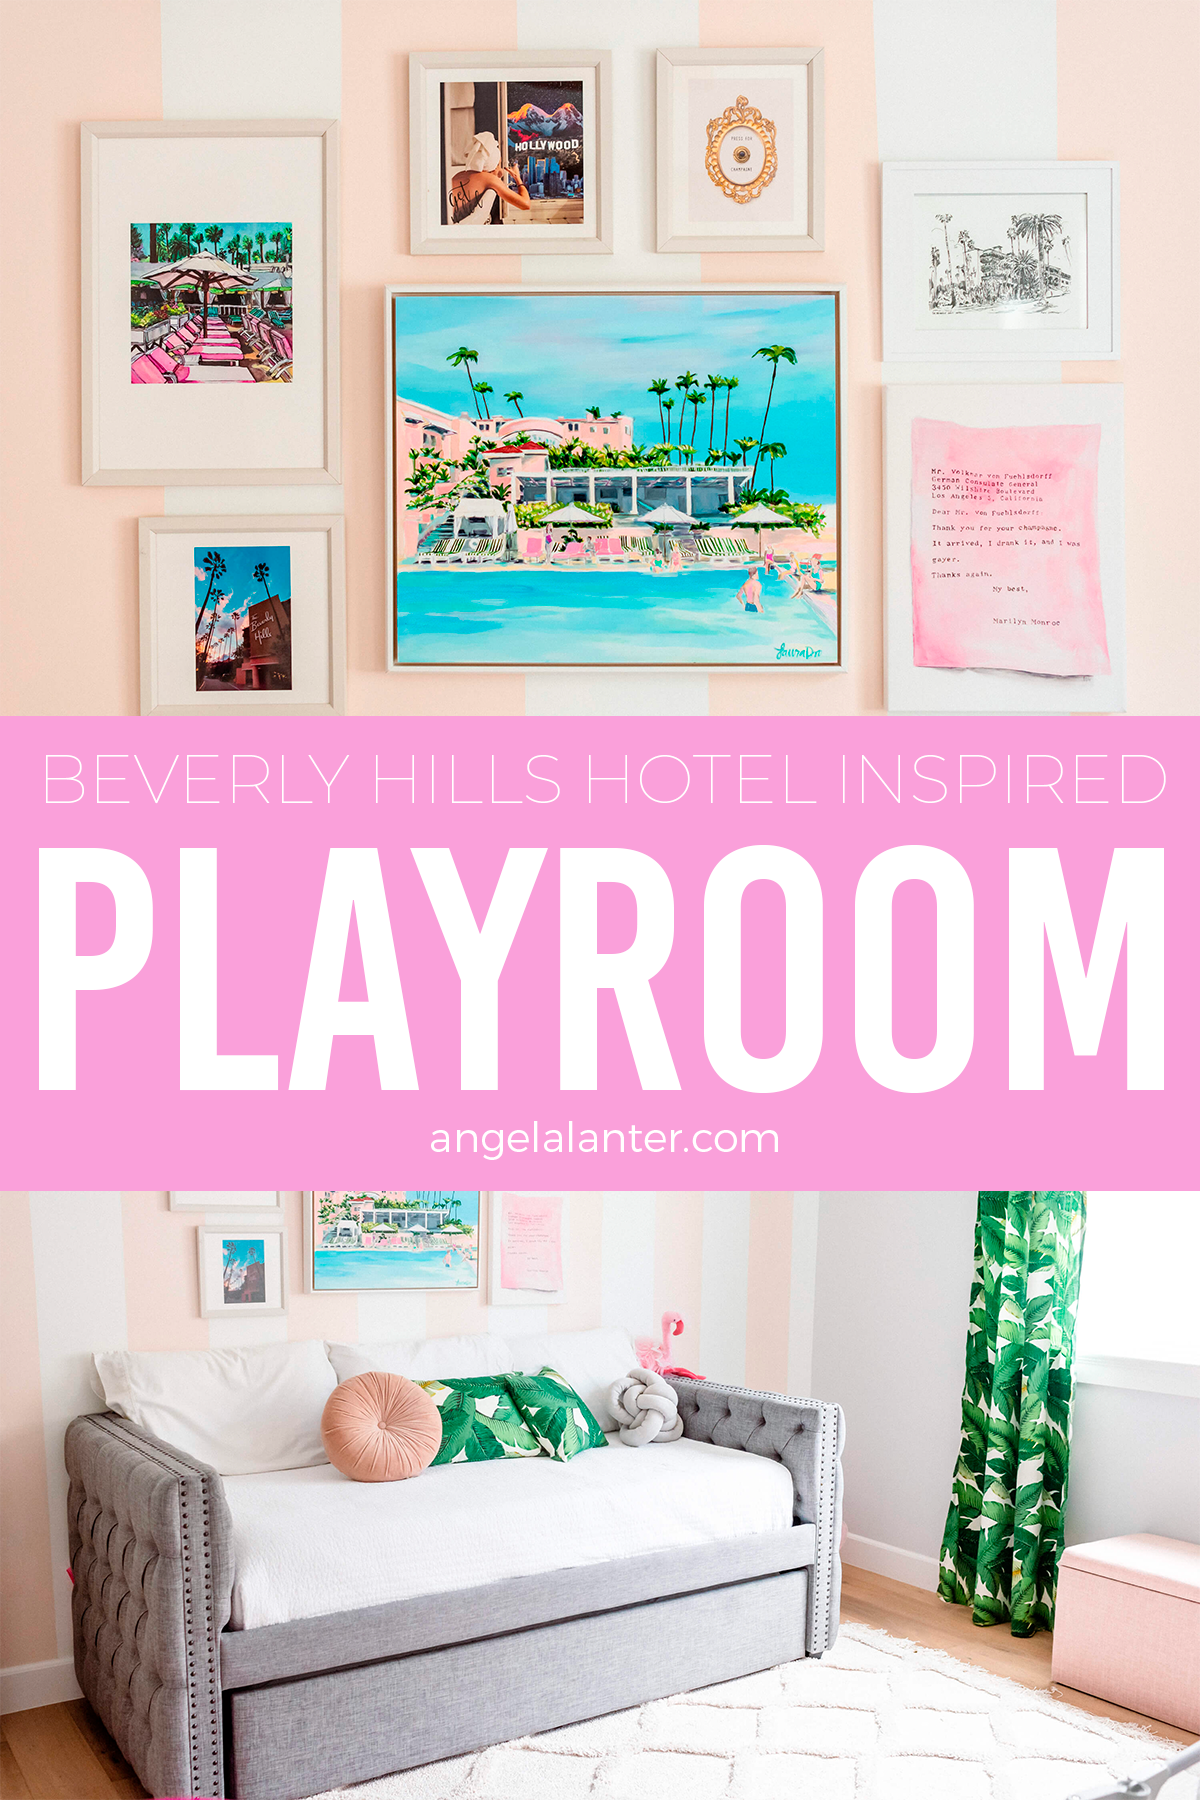 Our Beverly Hills Hotel Inspired Playroom Tour